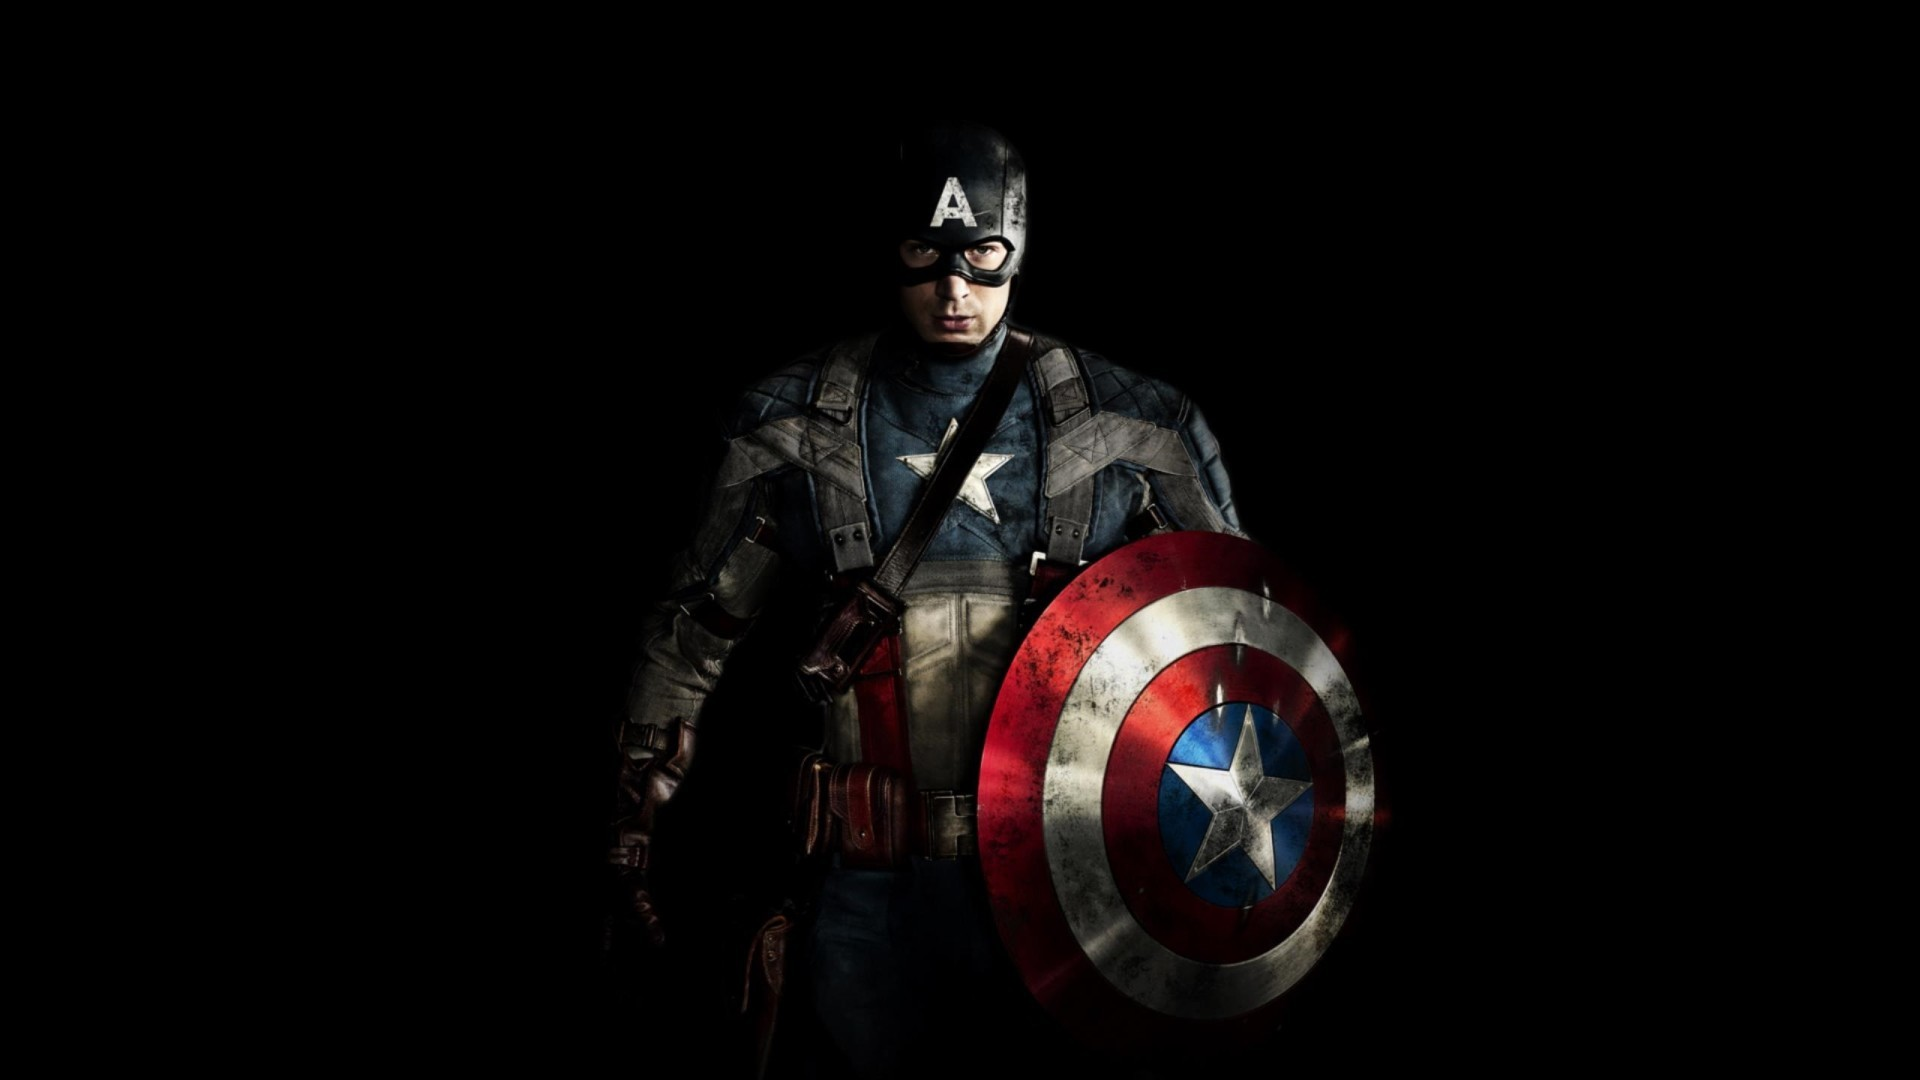 Captain america shield wallpaper hd 84 images - Captain america hd images download ...